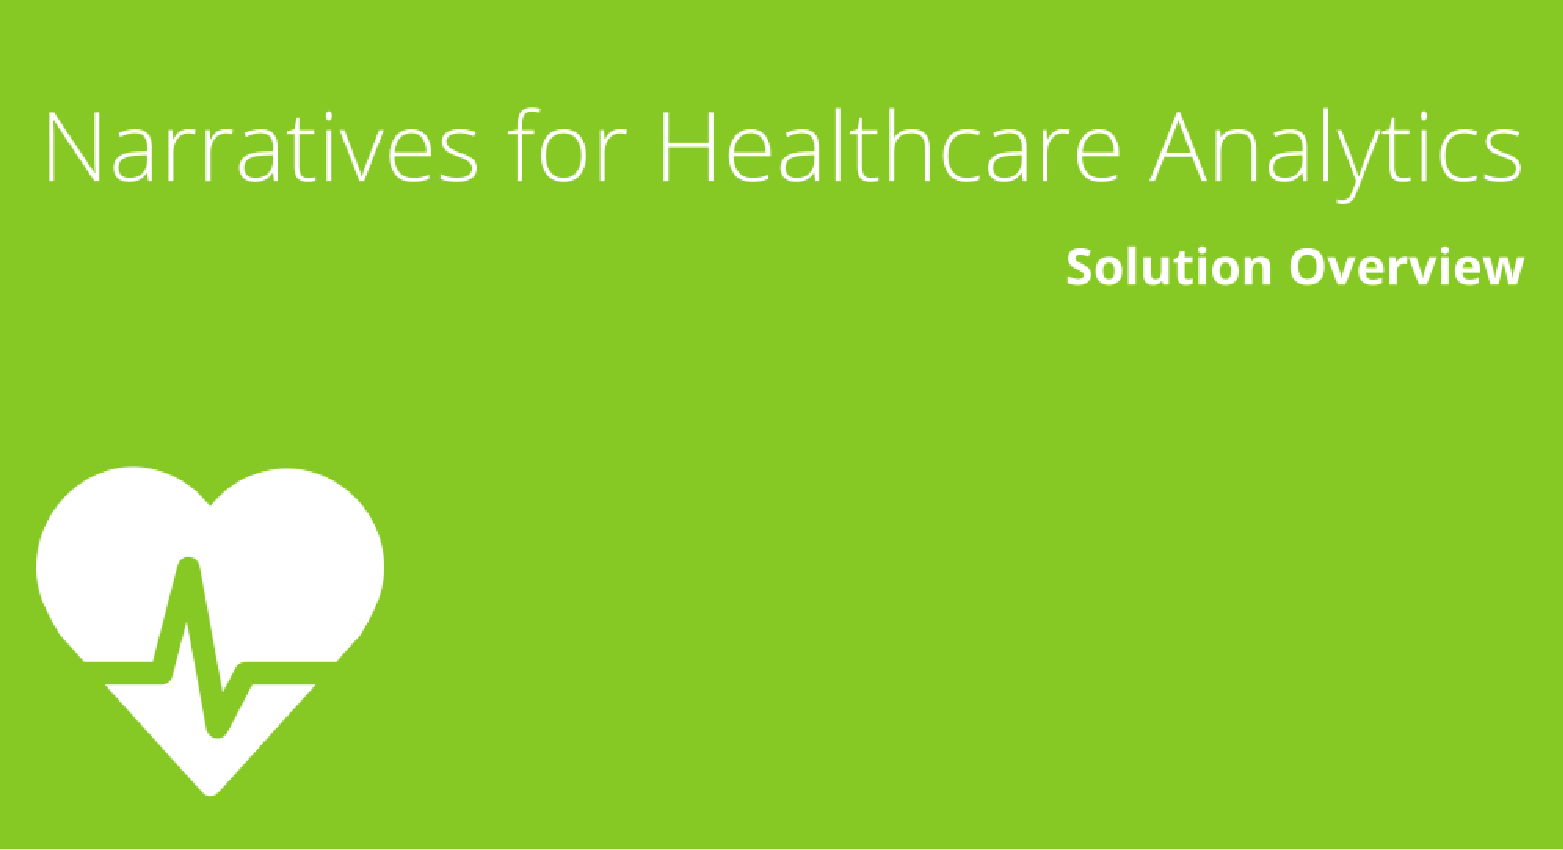 Narratives for Healthcare Analytics Solution Overview